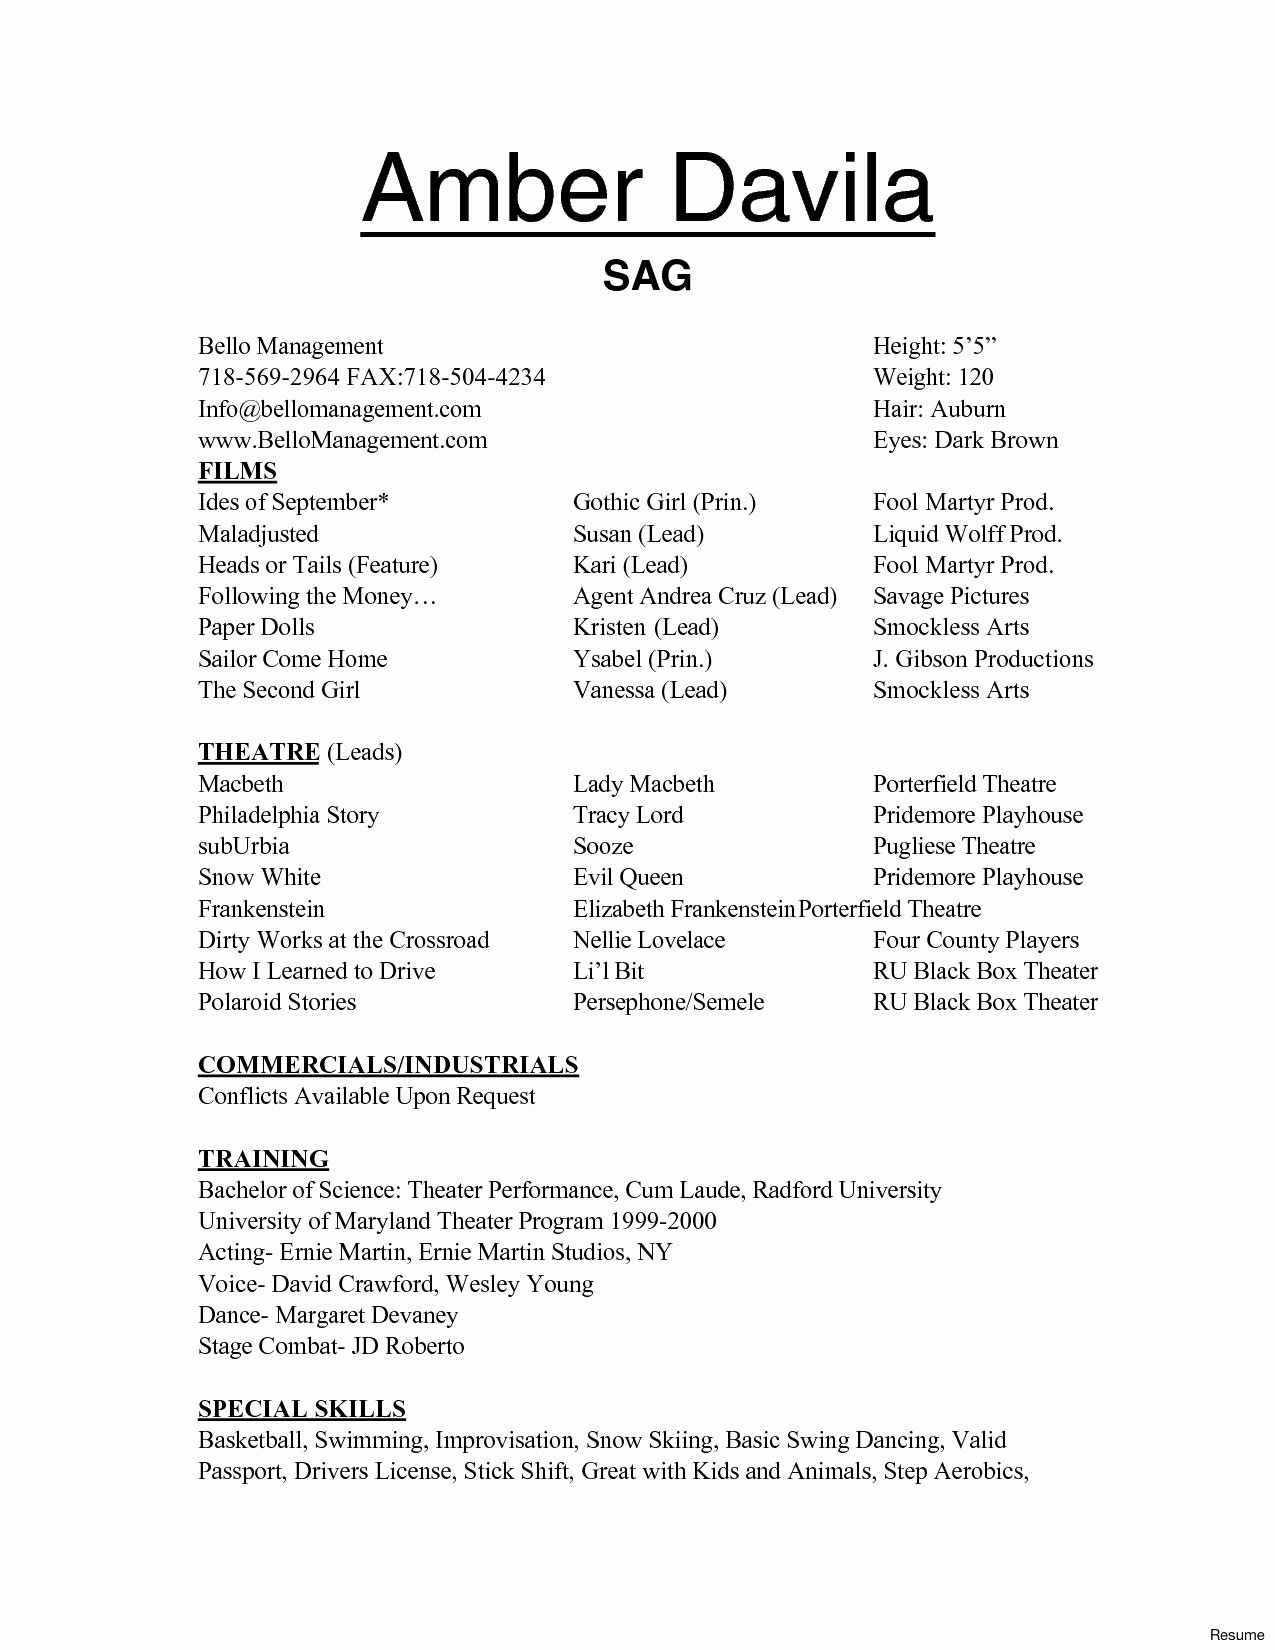 Theatre Tech Resume Template - Luxury Passport Template